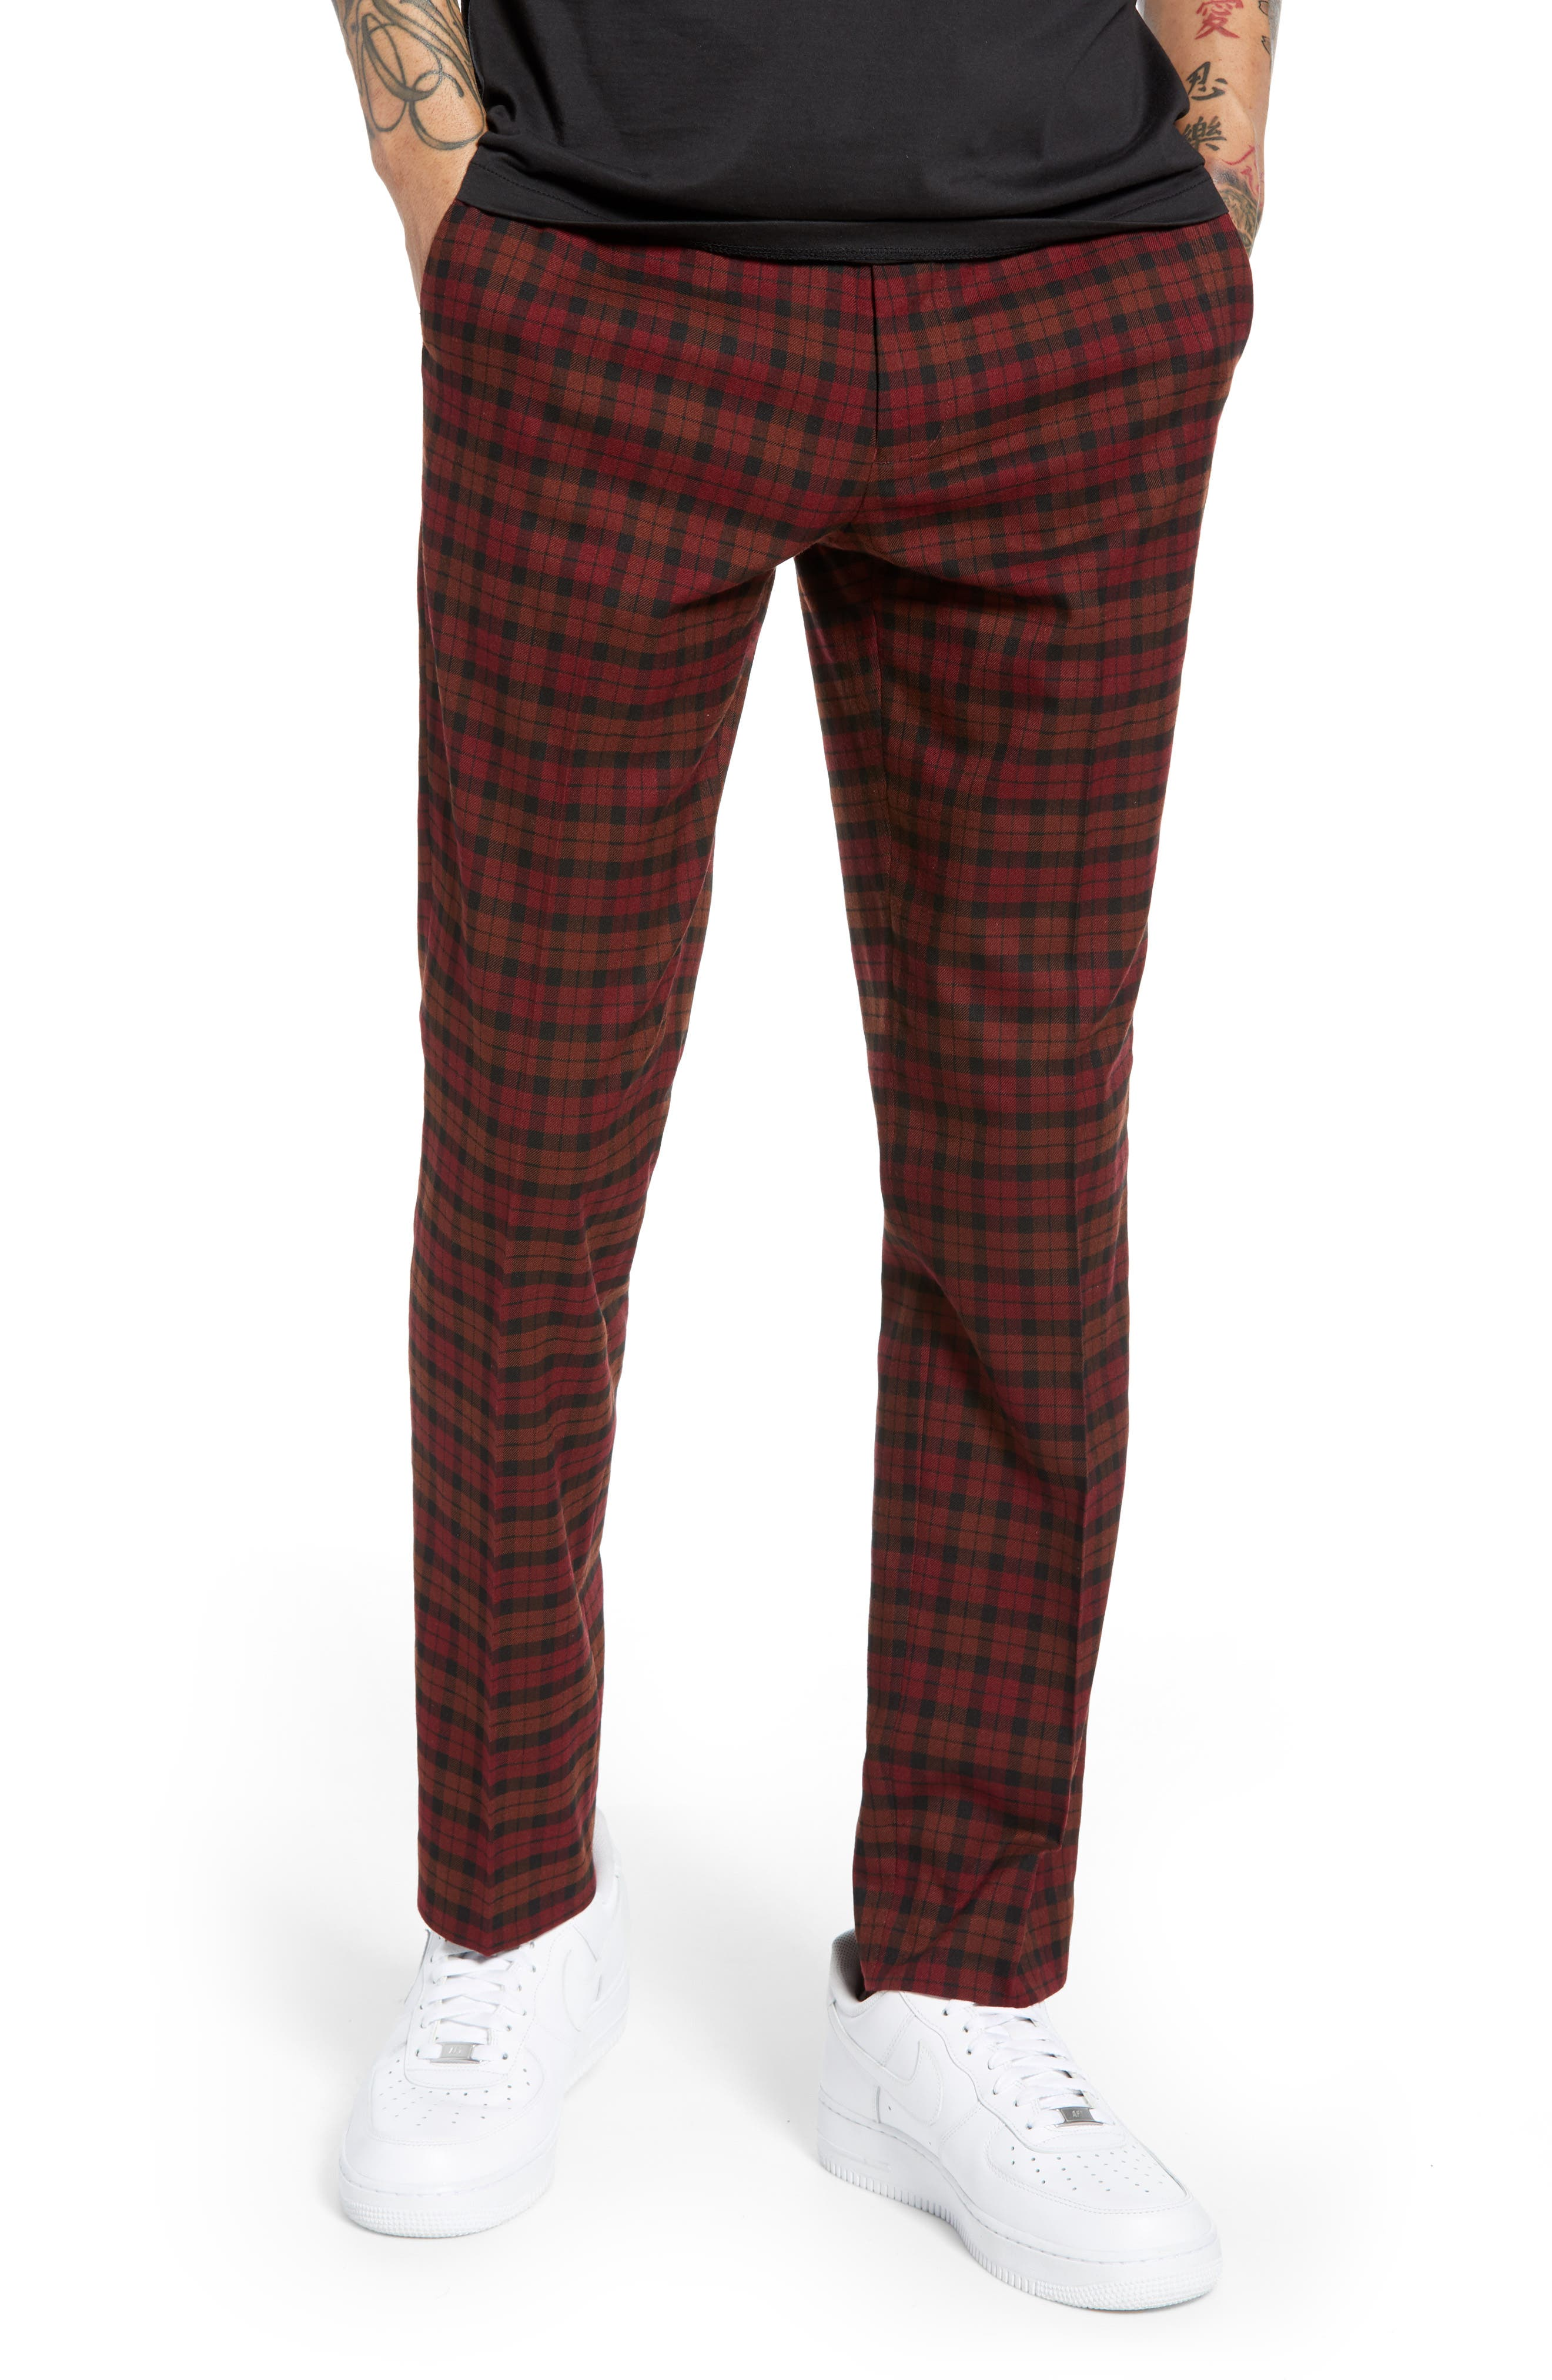 Thorn Slim Fit Trousers,                             Main thumbnail 1, color,                             RED MULTI